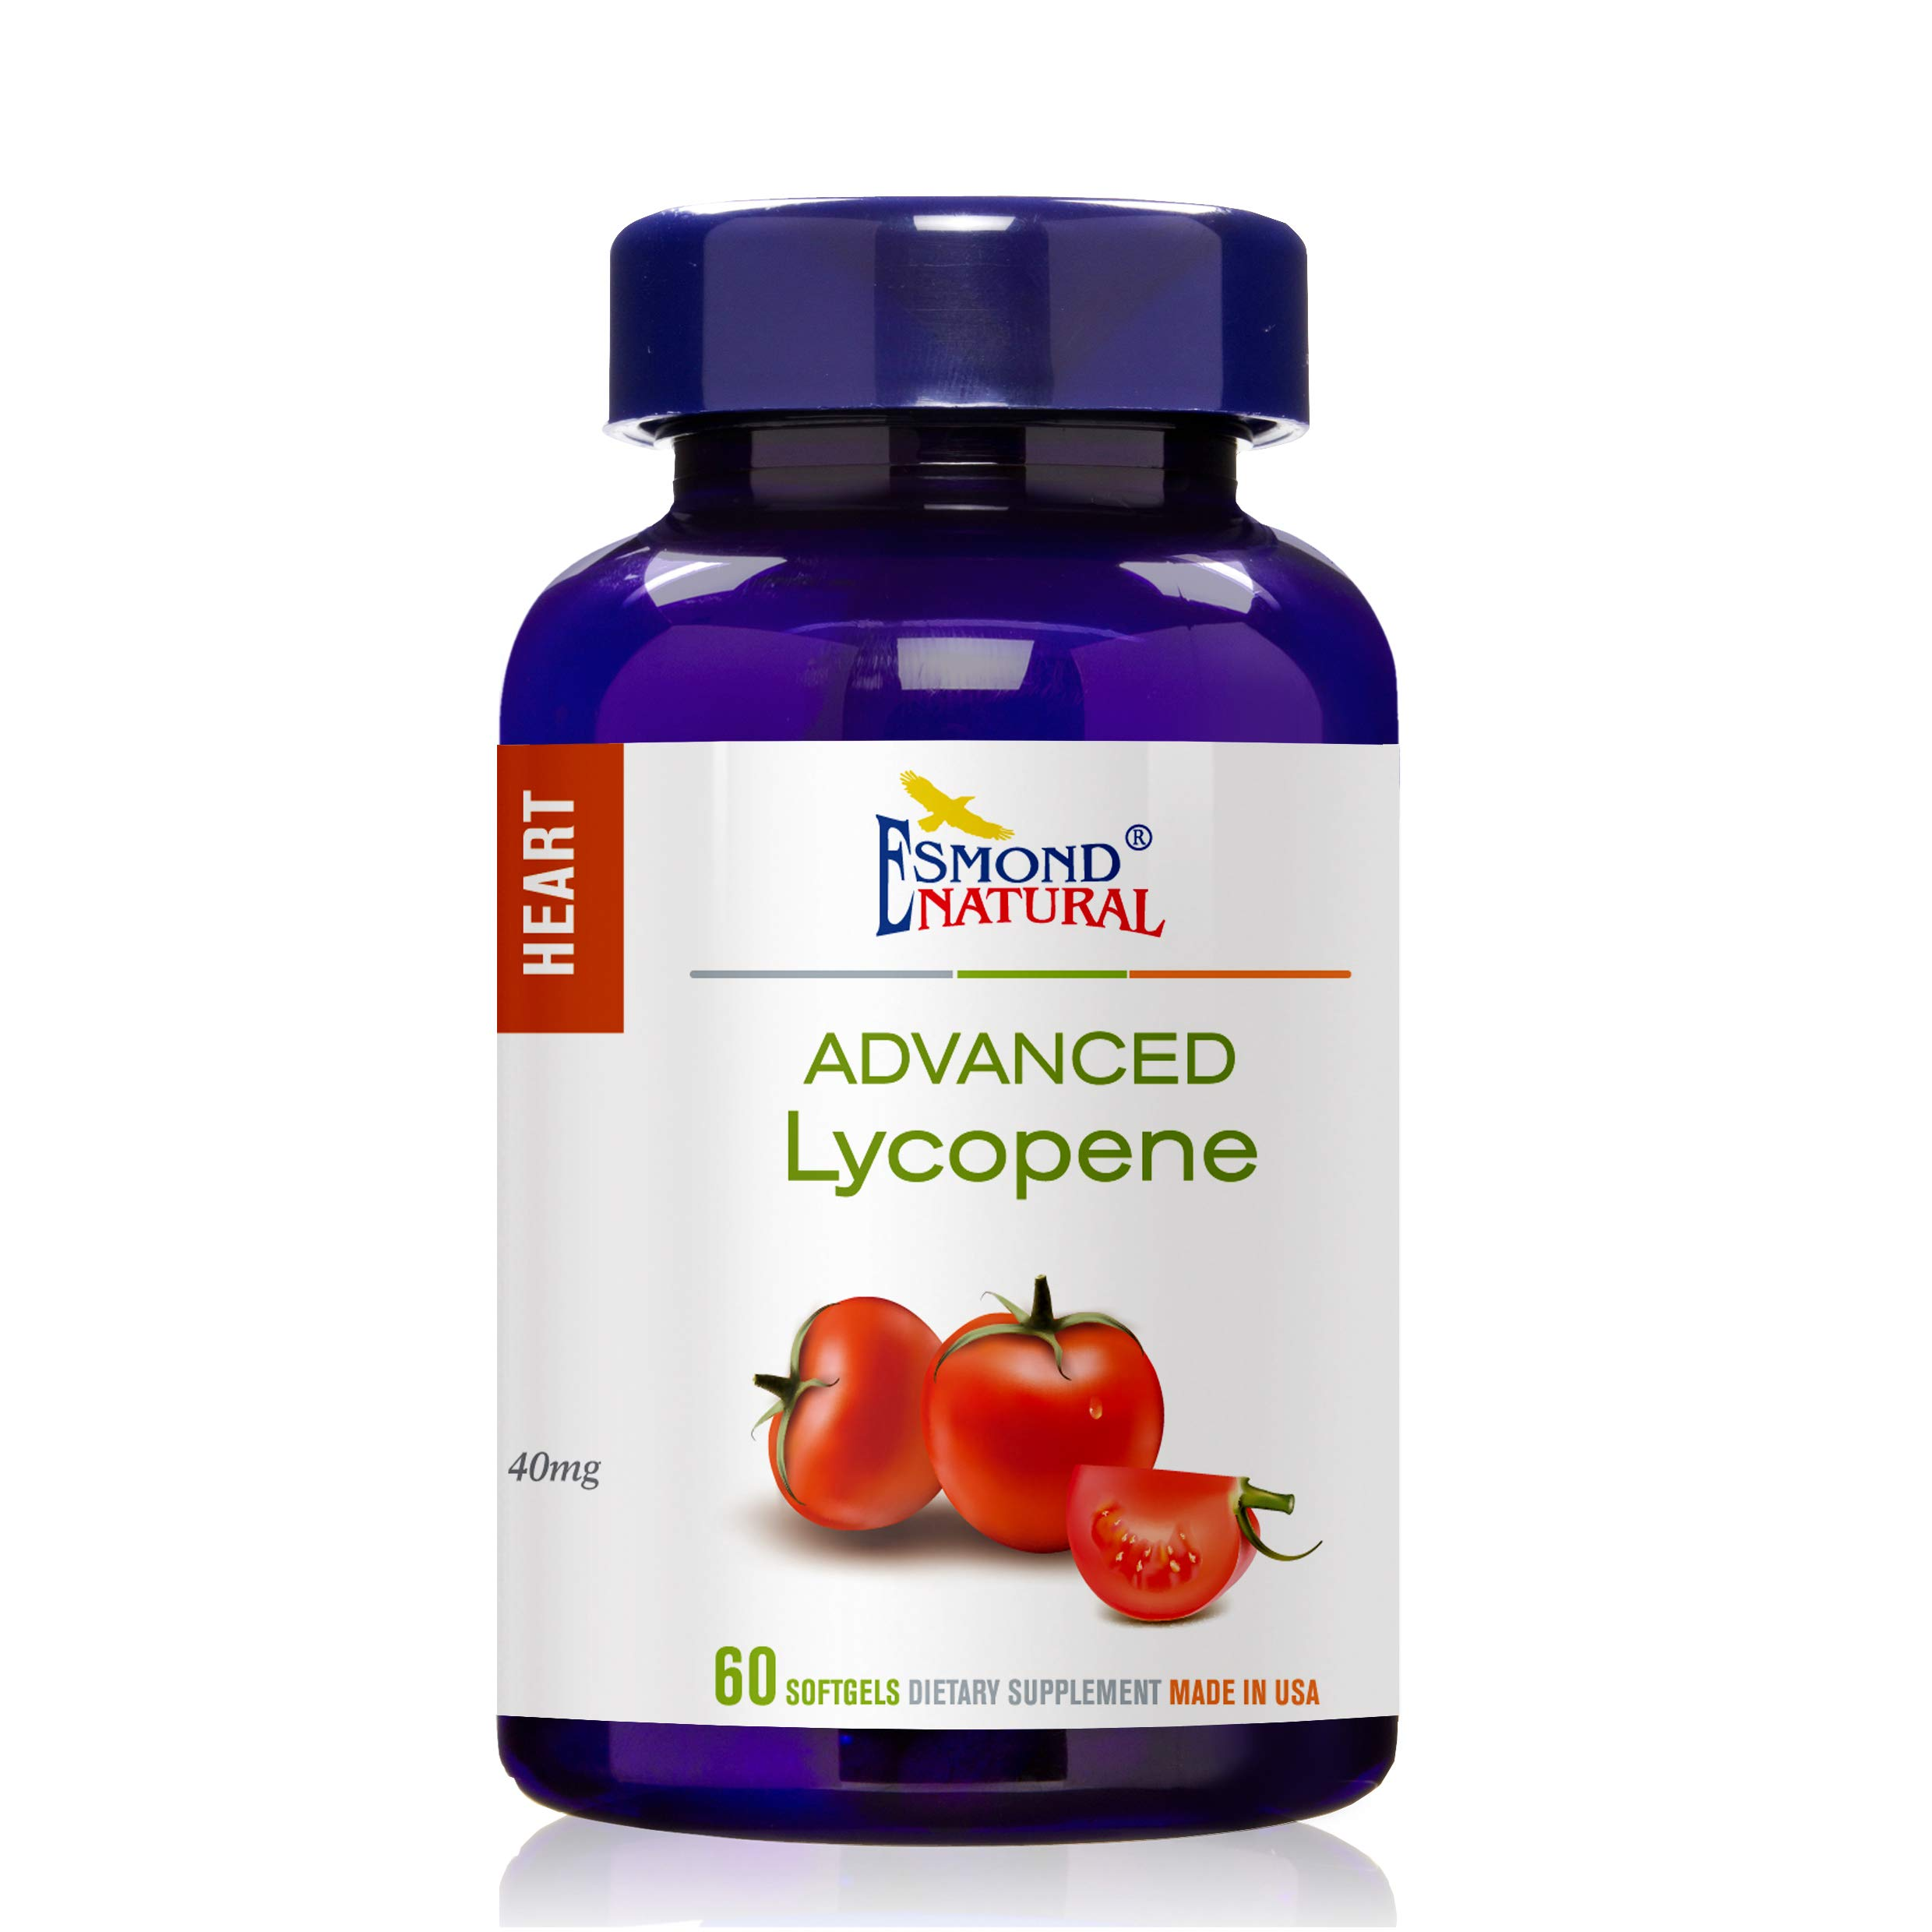 Esmond Natural: Advanced Lycopene (Supports Prostate and Hearth Health) 40mg, 60 softgels by Esmond Natural